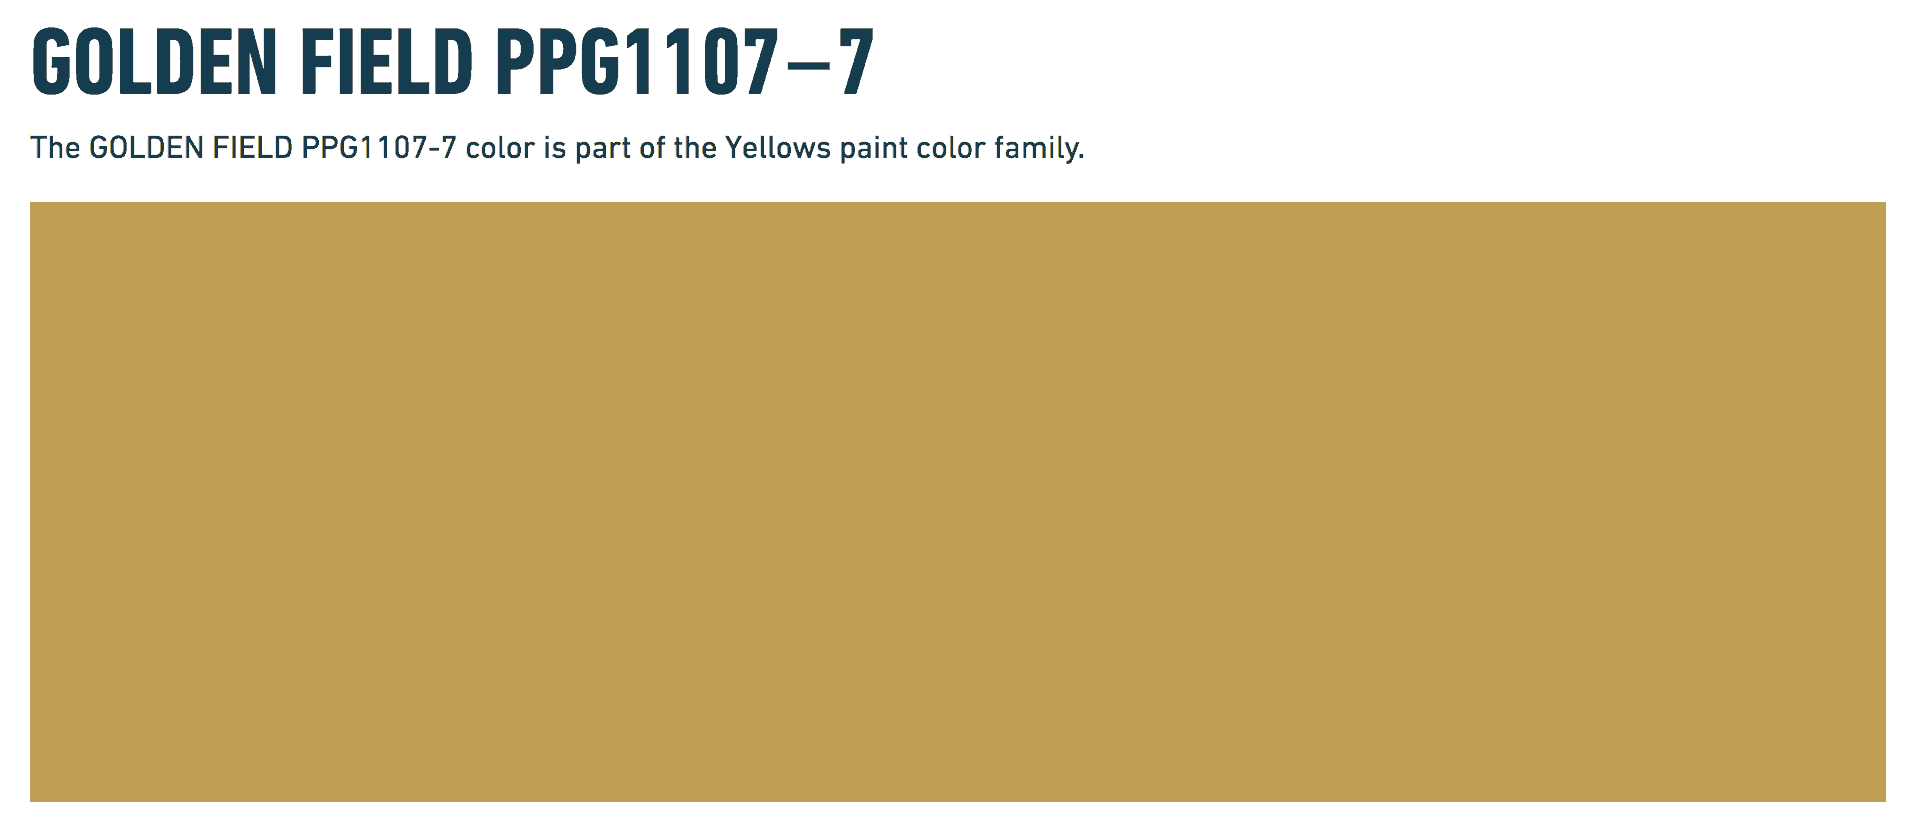 golden field ppg paints